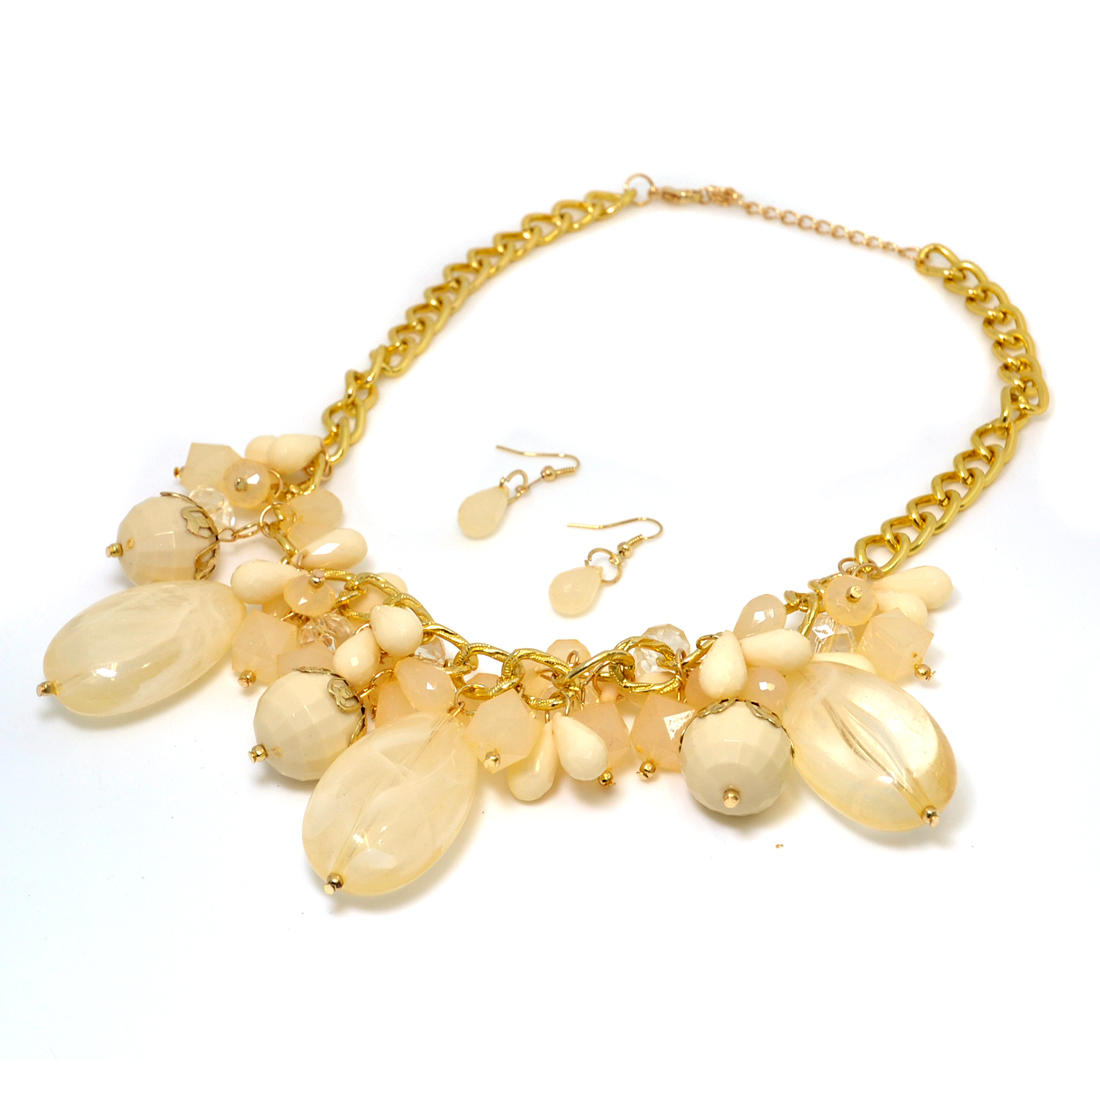 Gold-Tone Beaded Bib Necklace with Matching Earrings